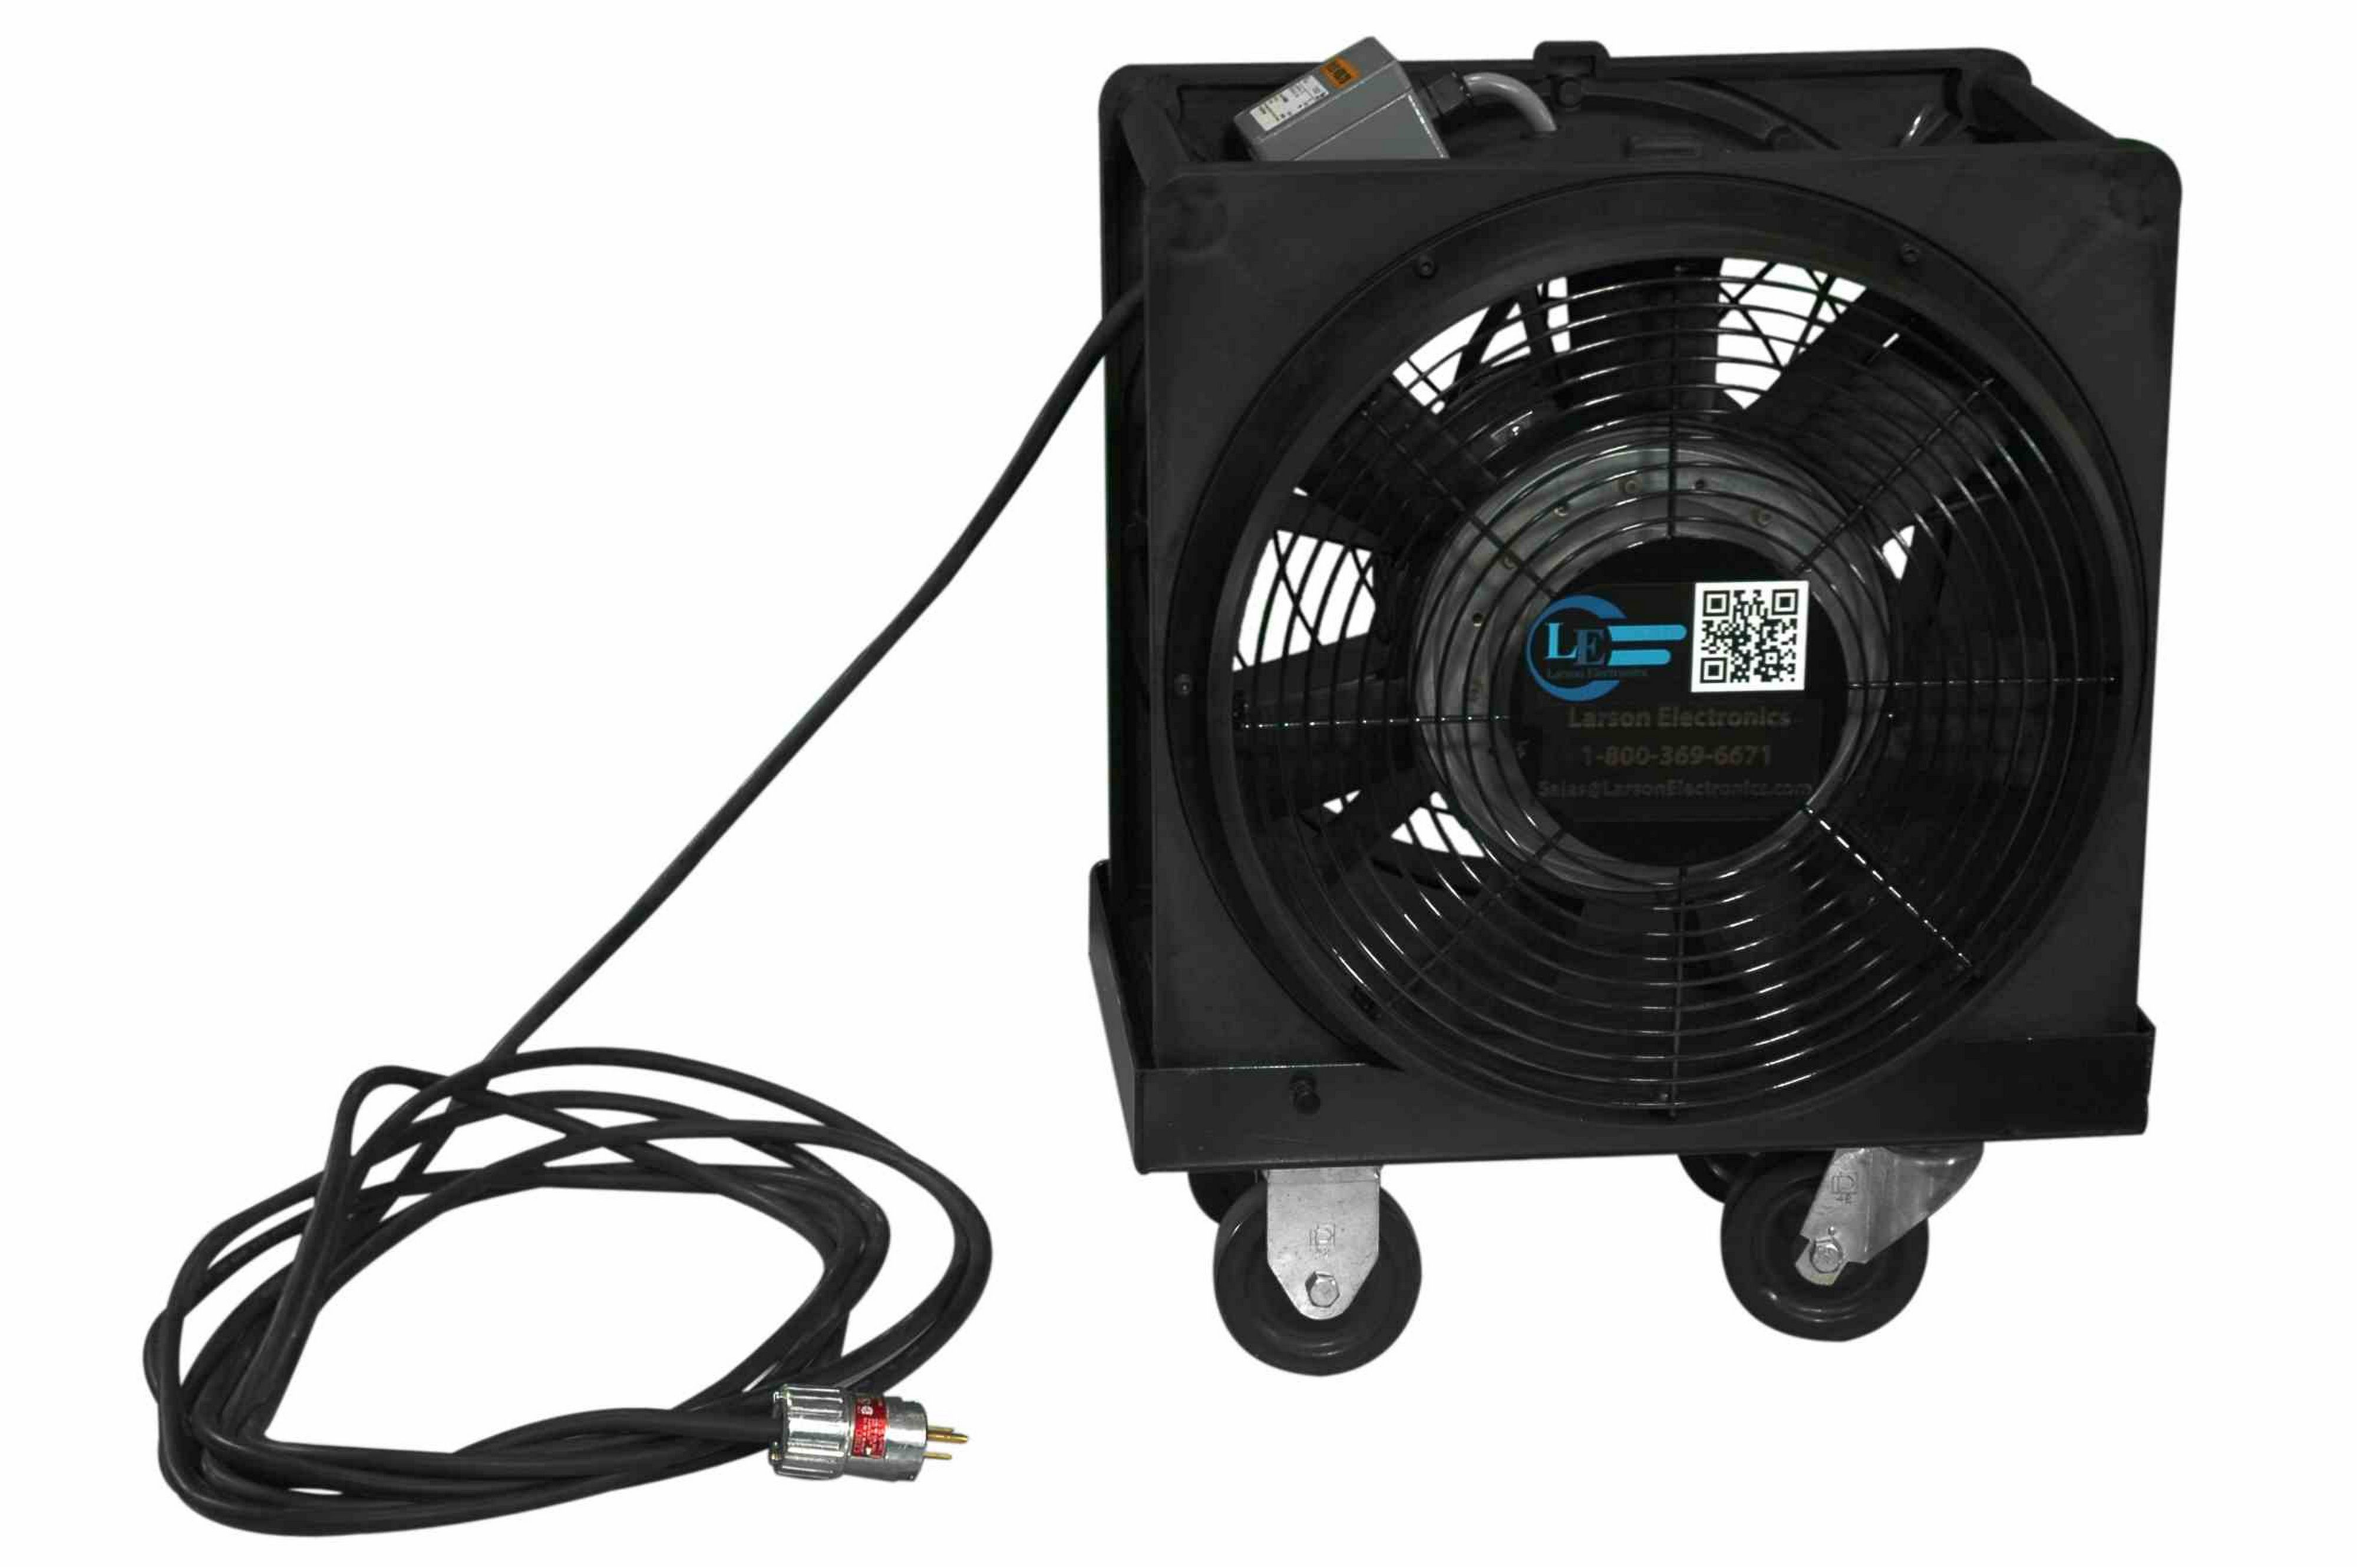 Explosion Proof Blowers : Electric explosion proof box fan blower cart cfm